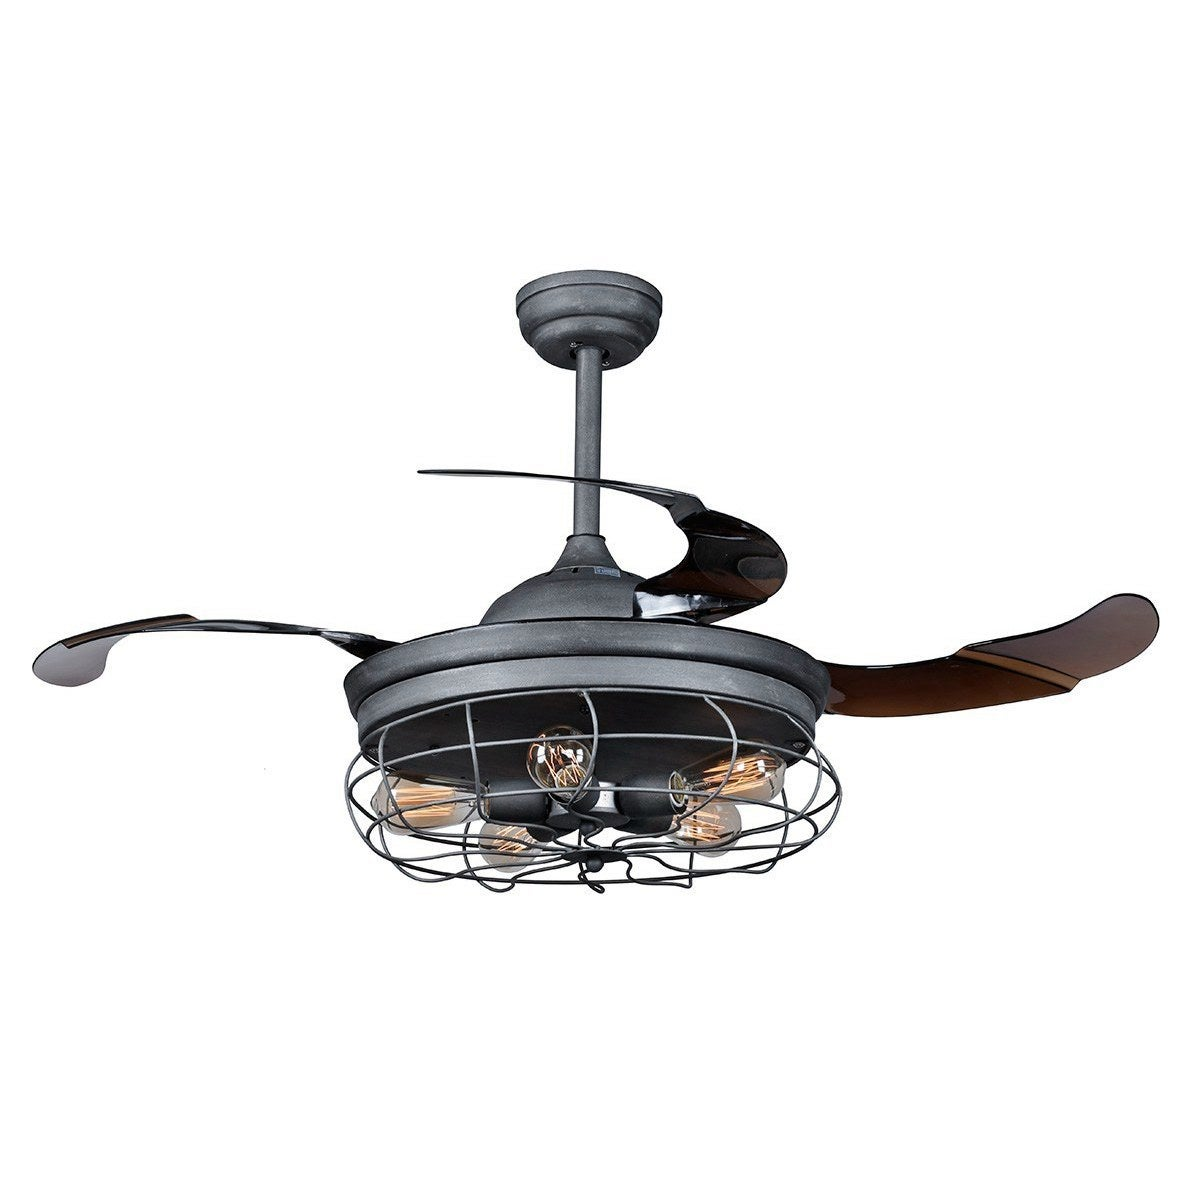 44 inch industrial foldable 4 blades iron ceiling fans with shade 44 inch industrial foldable 4 blades iron ceiling fans with shade free shipping today overstock 25440978 mozeypictures Images